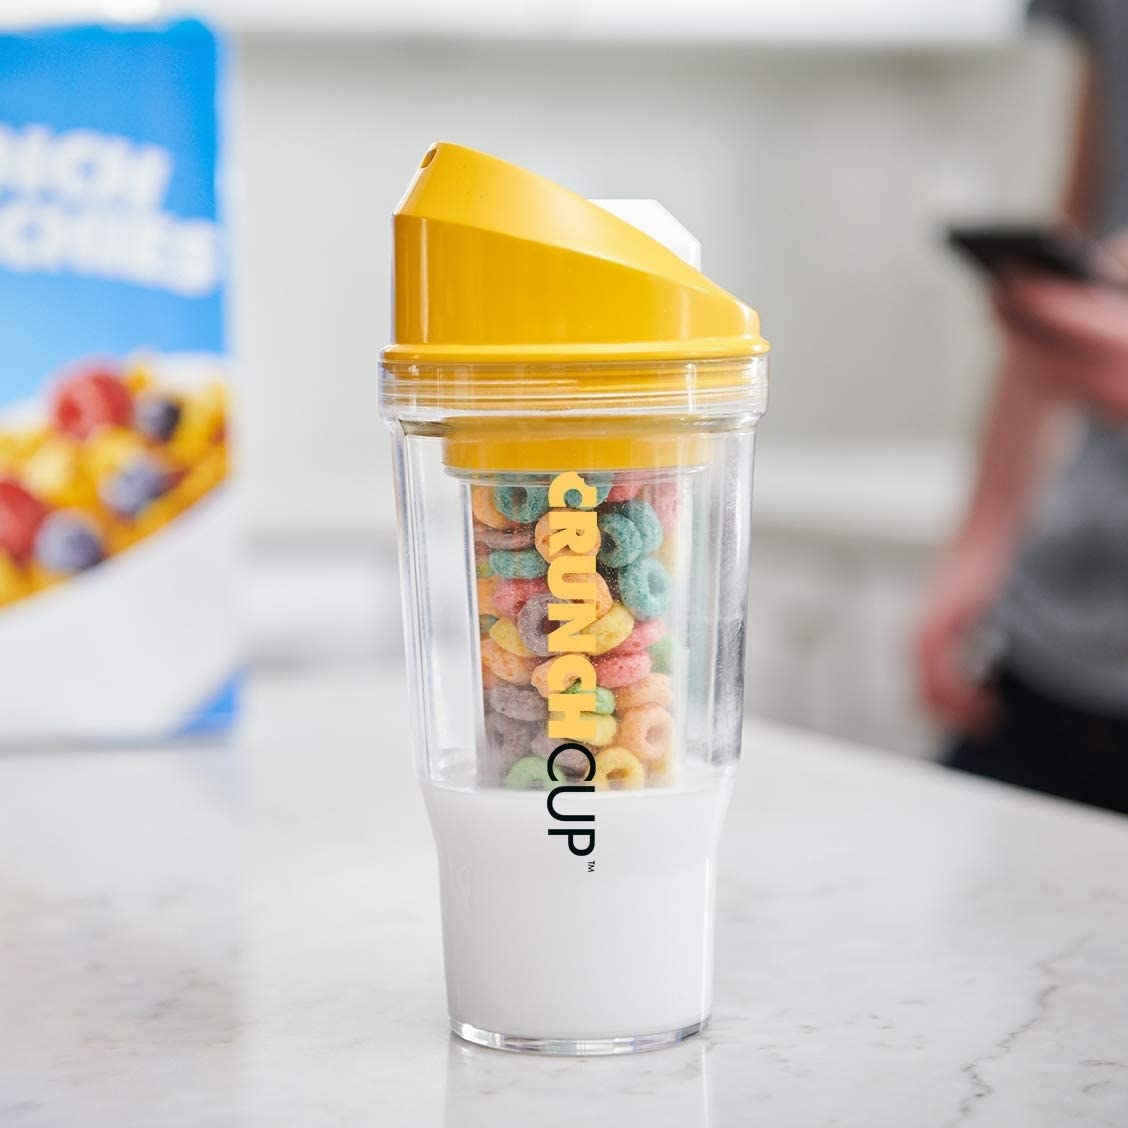 A cereal cup filled with milk and cereal on a kitchen counter